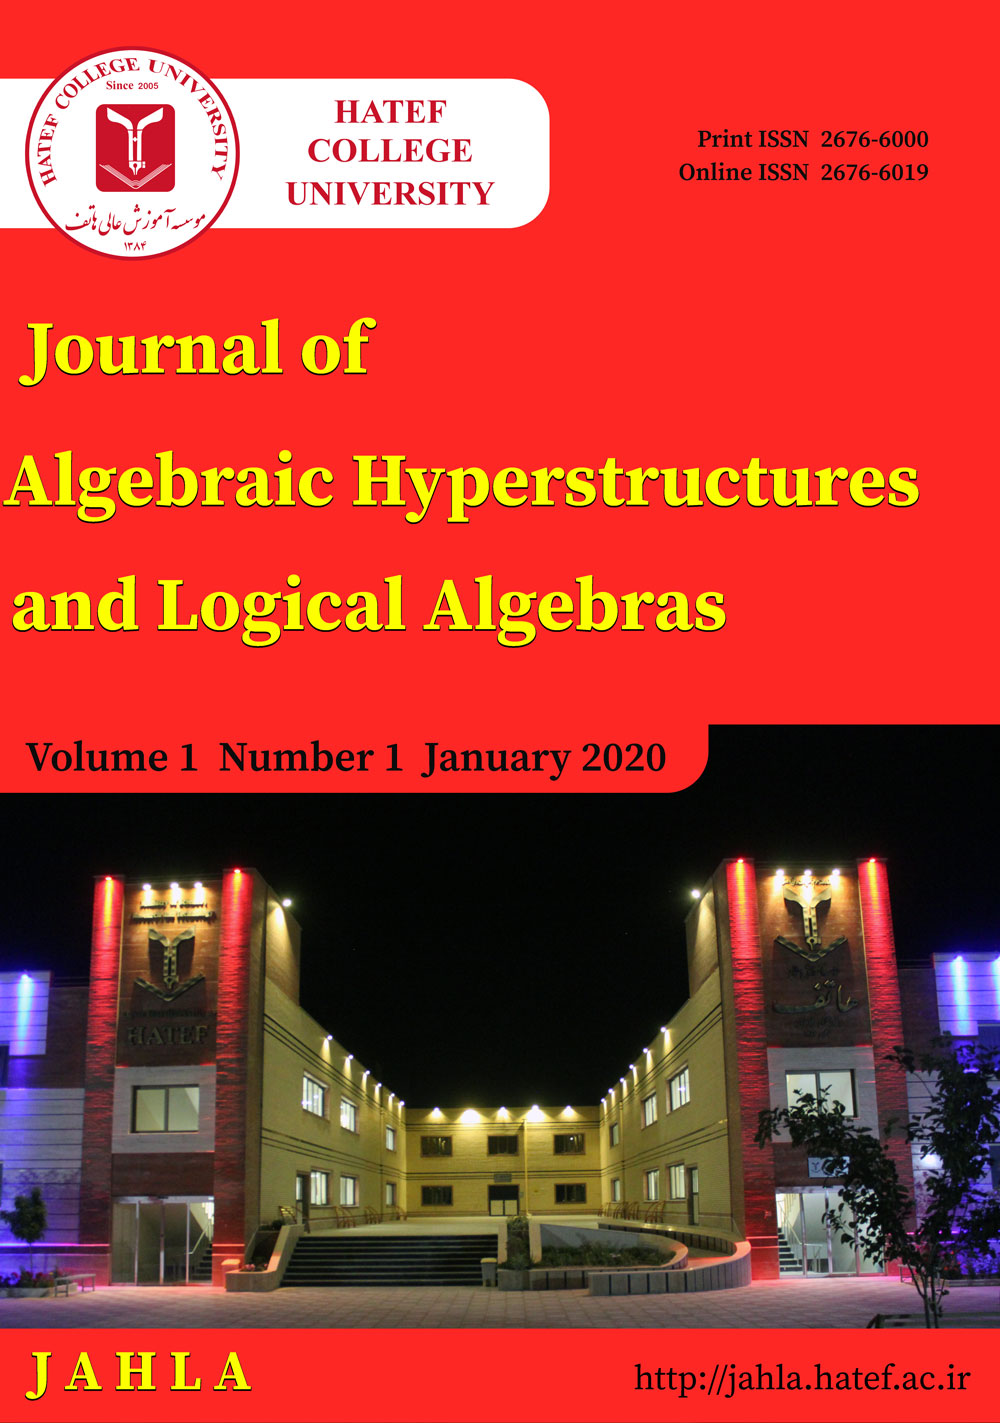 Journal of Algebraic Hyperstructures and Logical Algebras